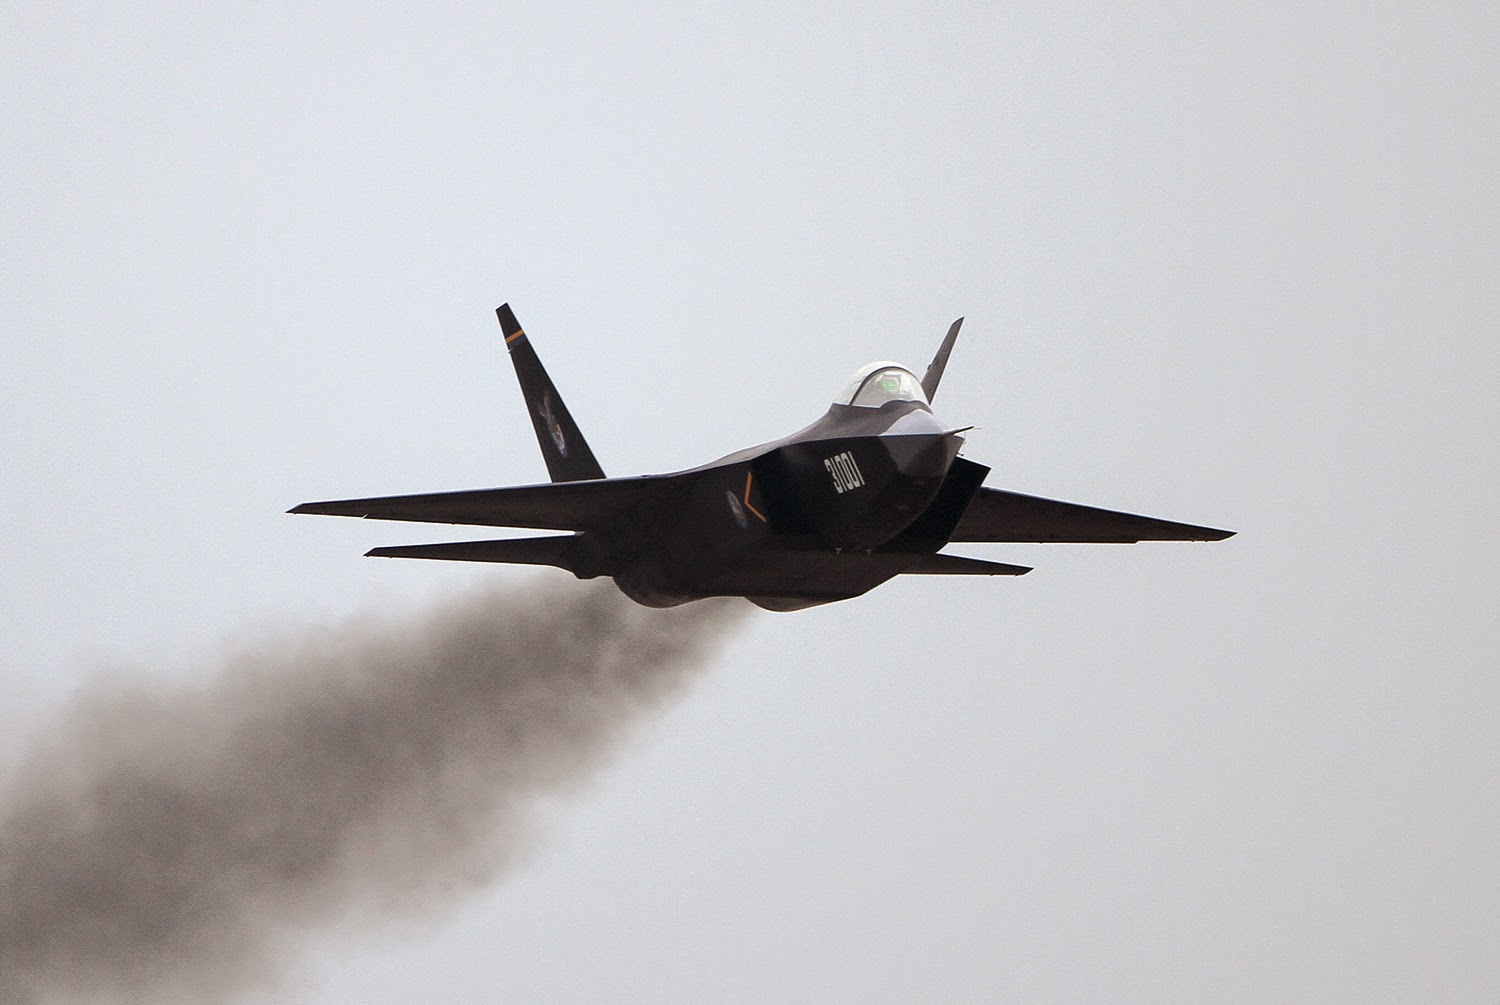 Some photos of the J-31 fighter jets show their engines